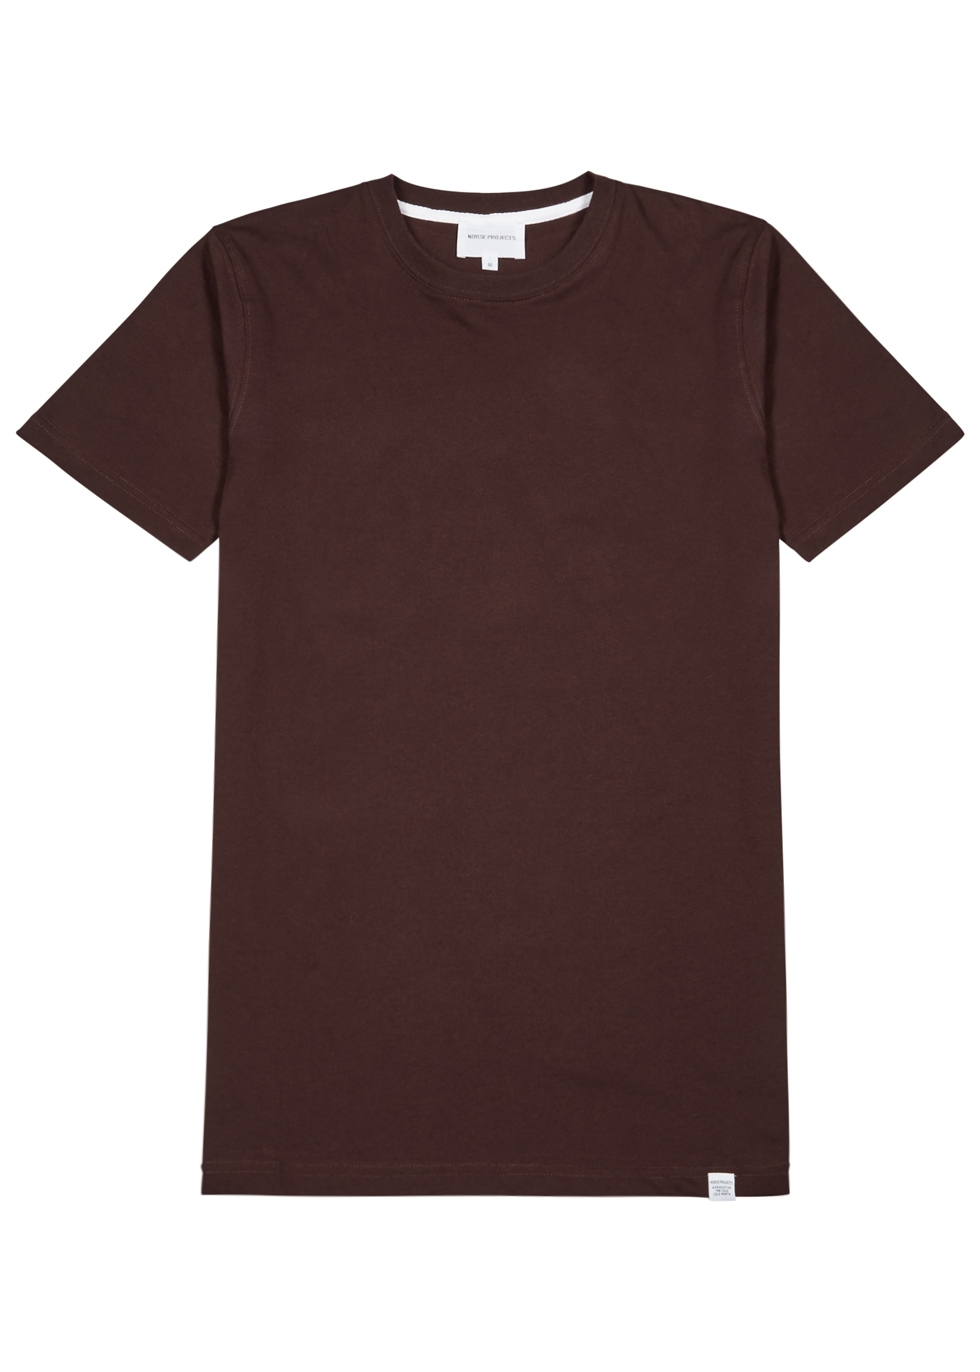 NORSE PROJECTS NEILS BURGUNDY COTTON T-SHIRT